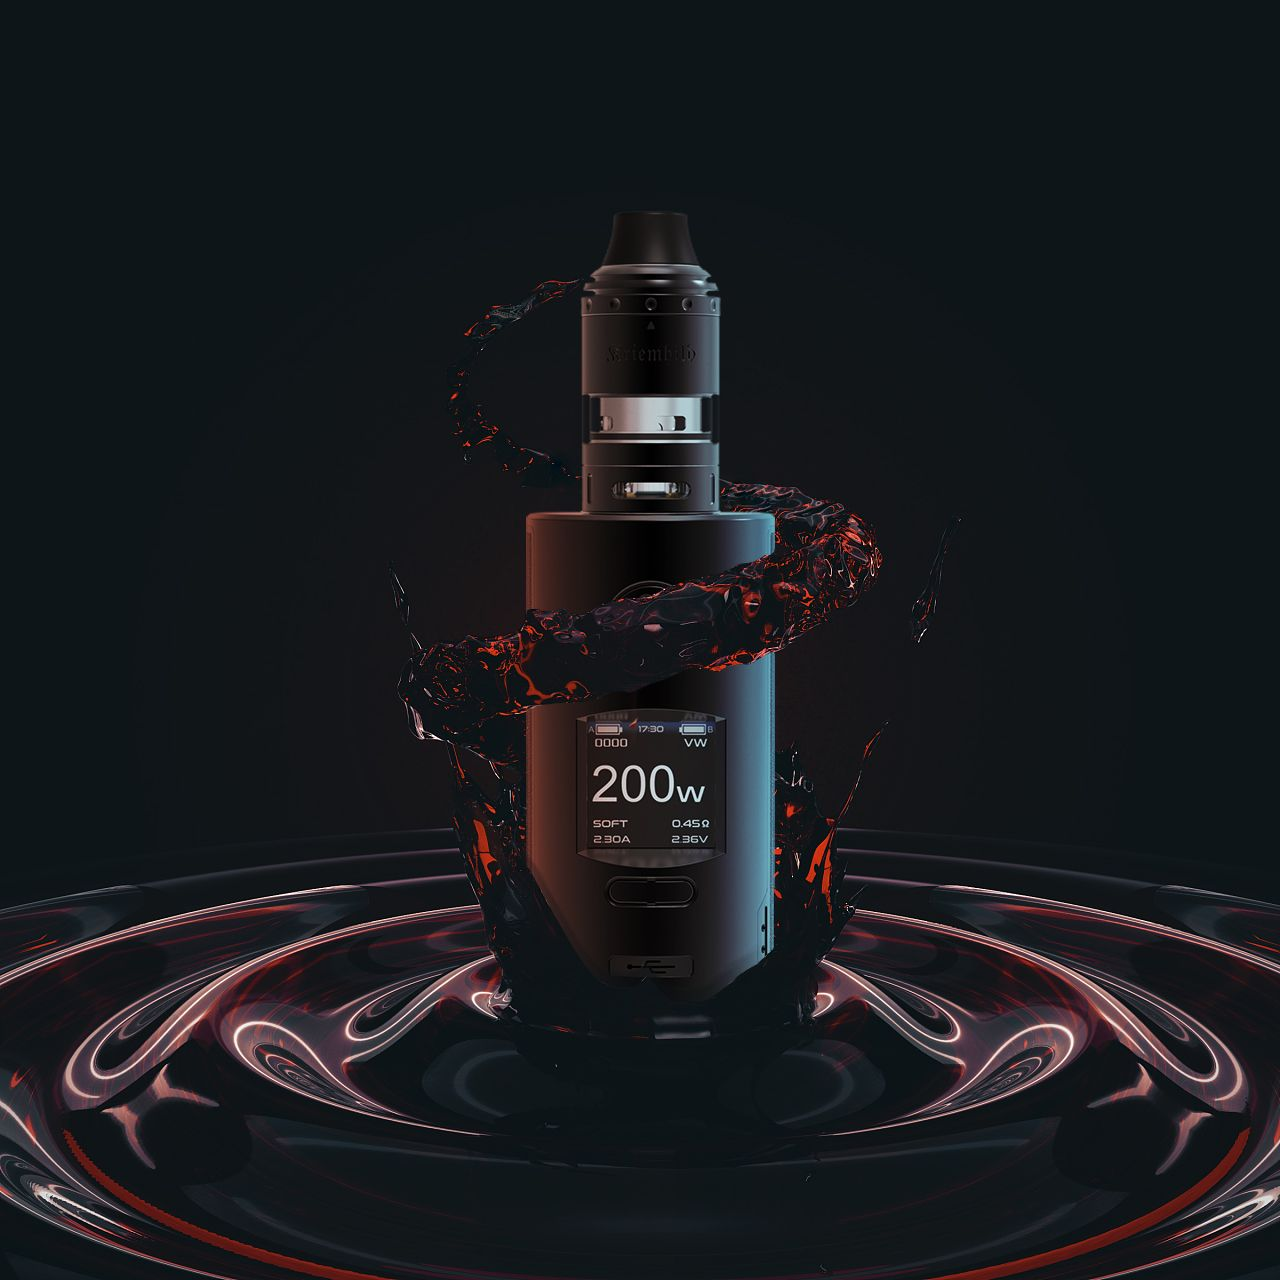 (Preorder) Vapefly Kriemhild 200W Kit (With images